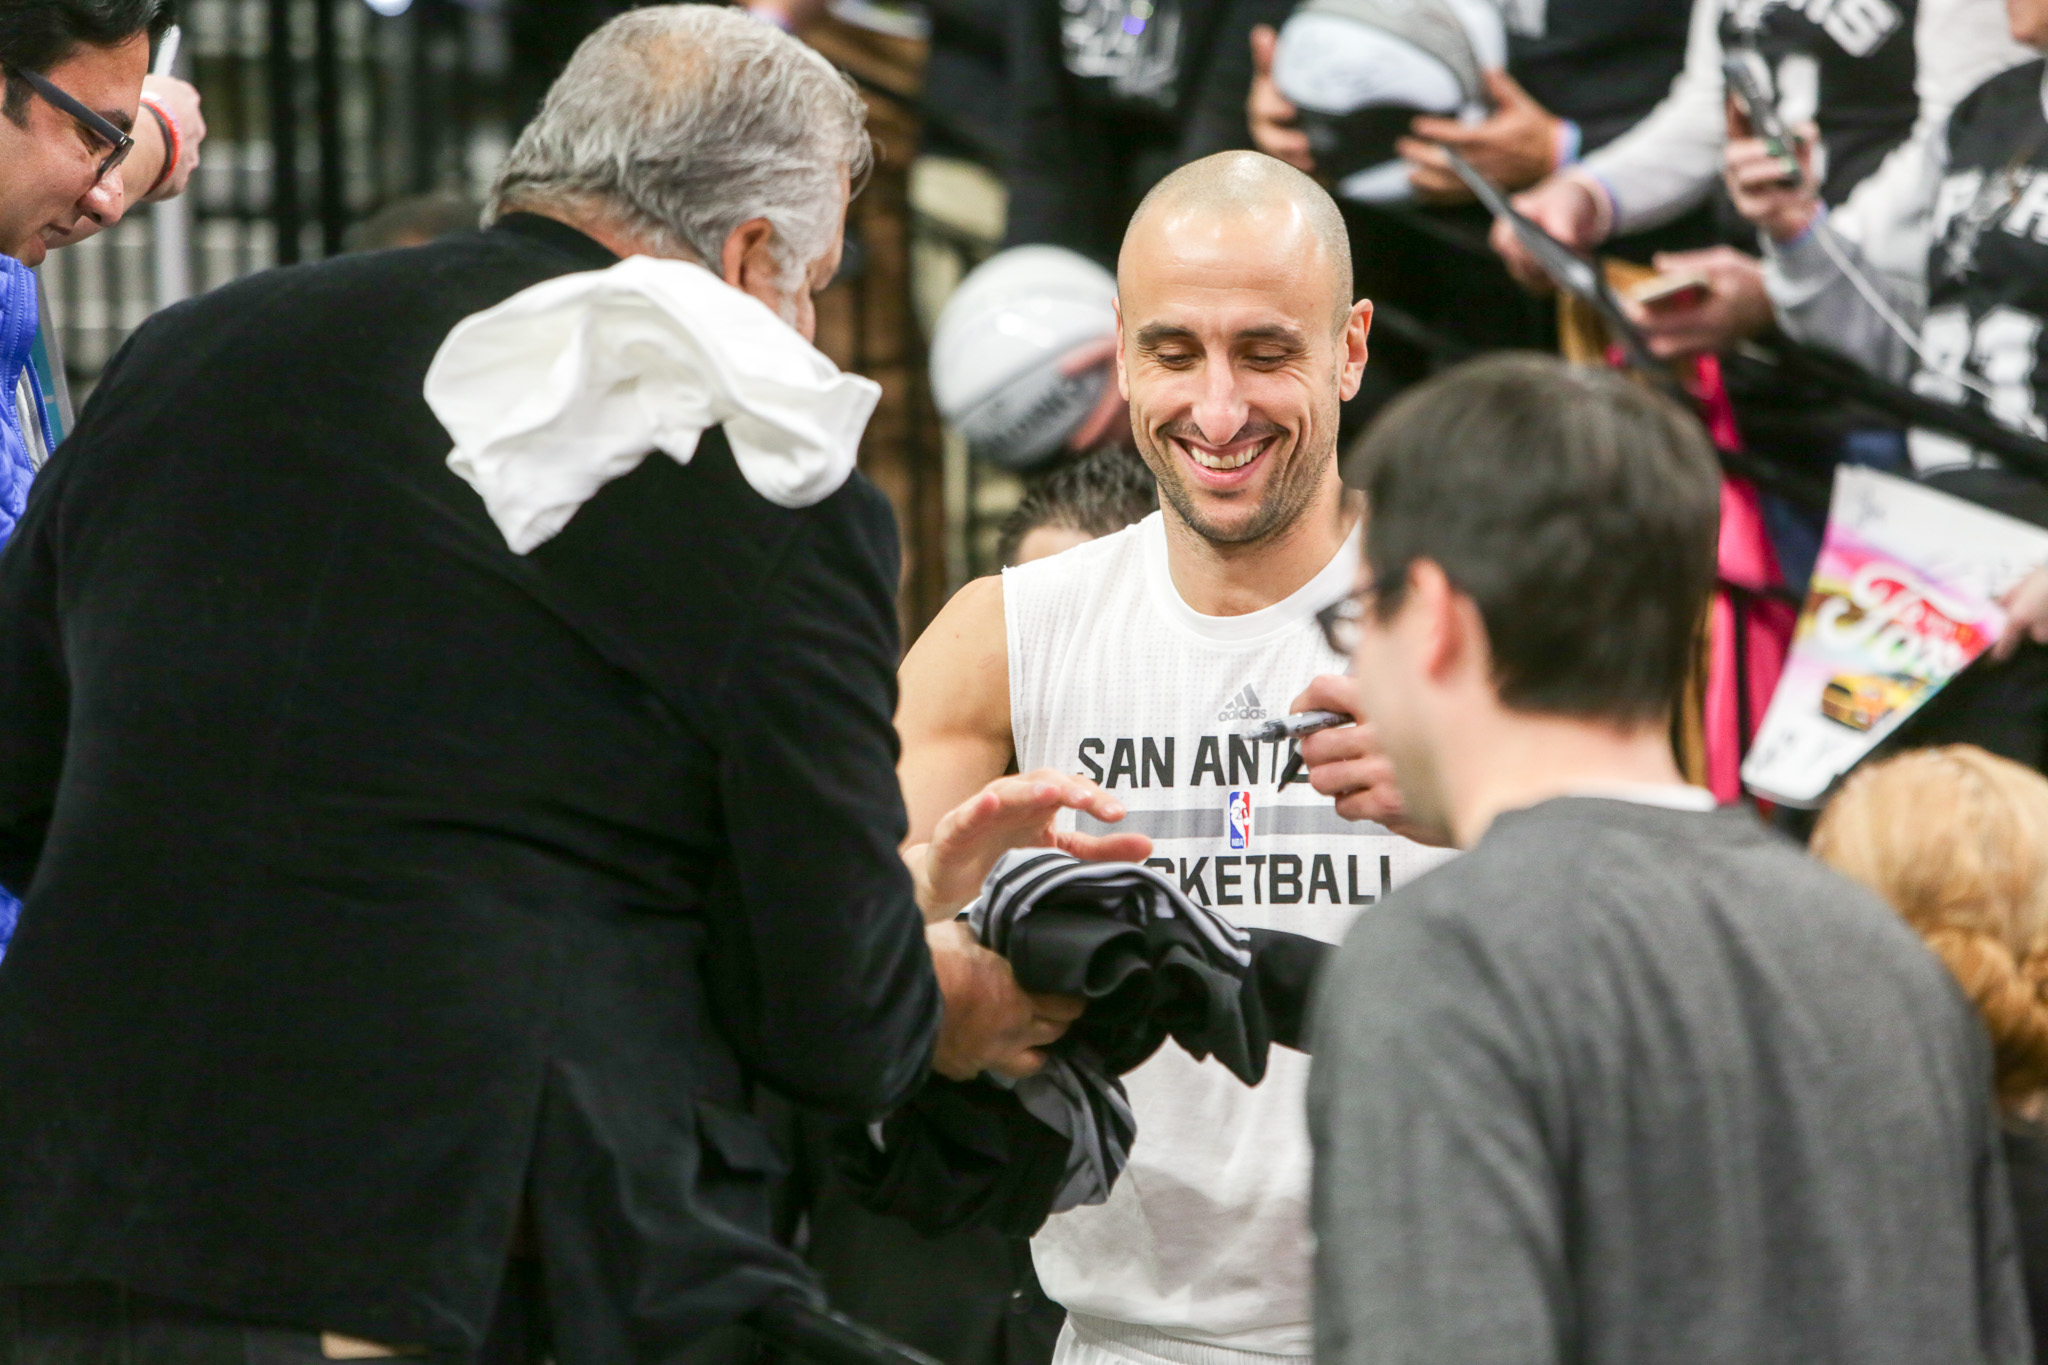 Spurs guard Manu Ginobili signs a jersey for a fan before the game begins.